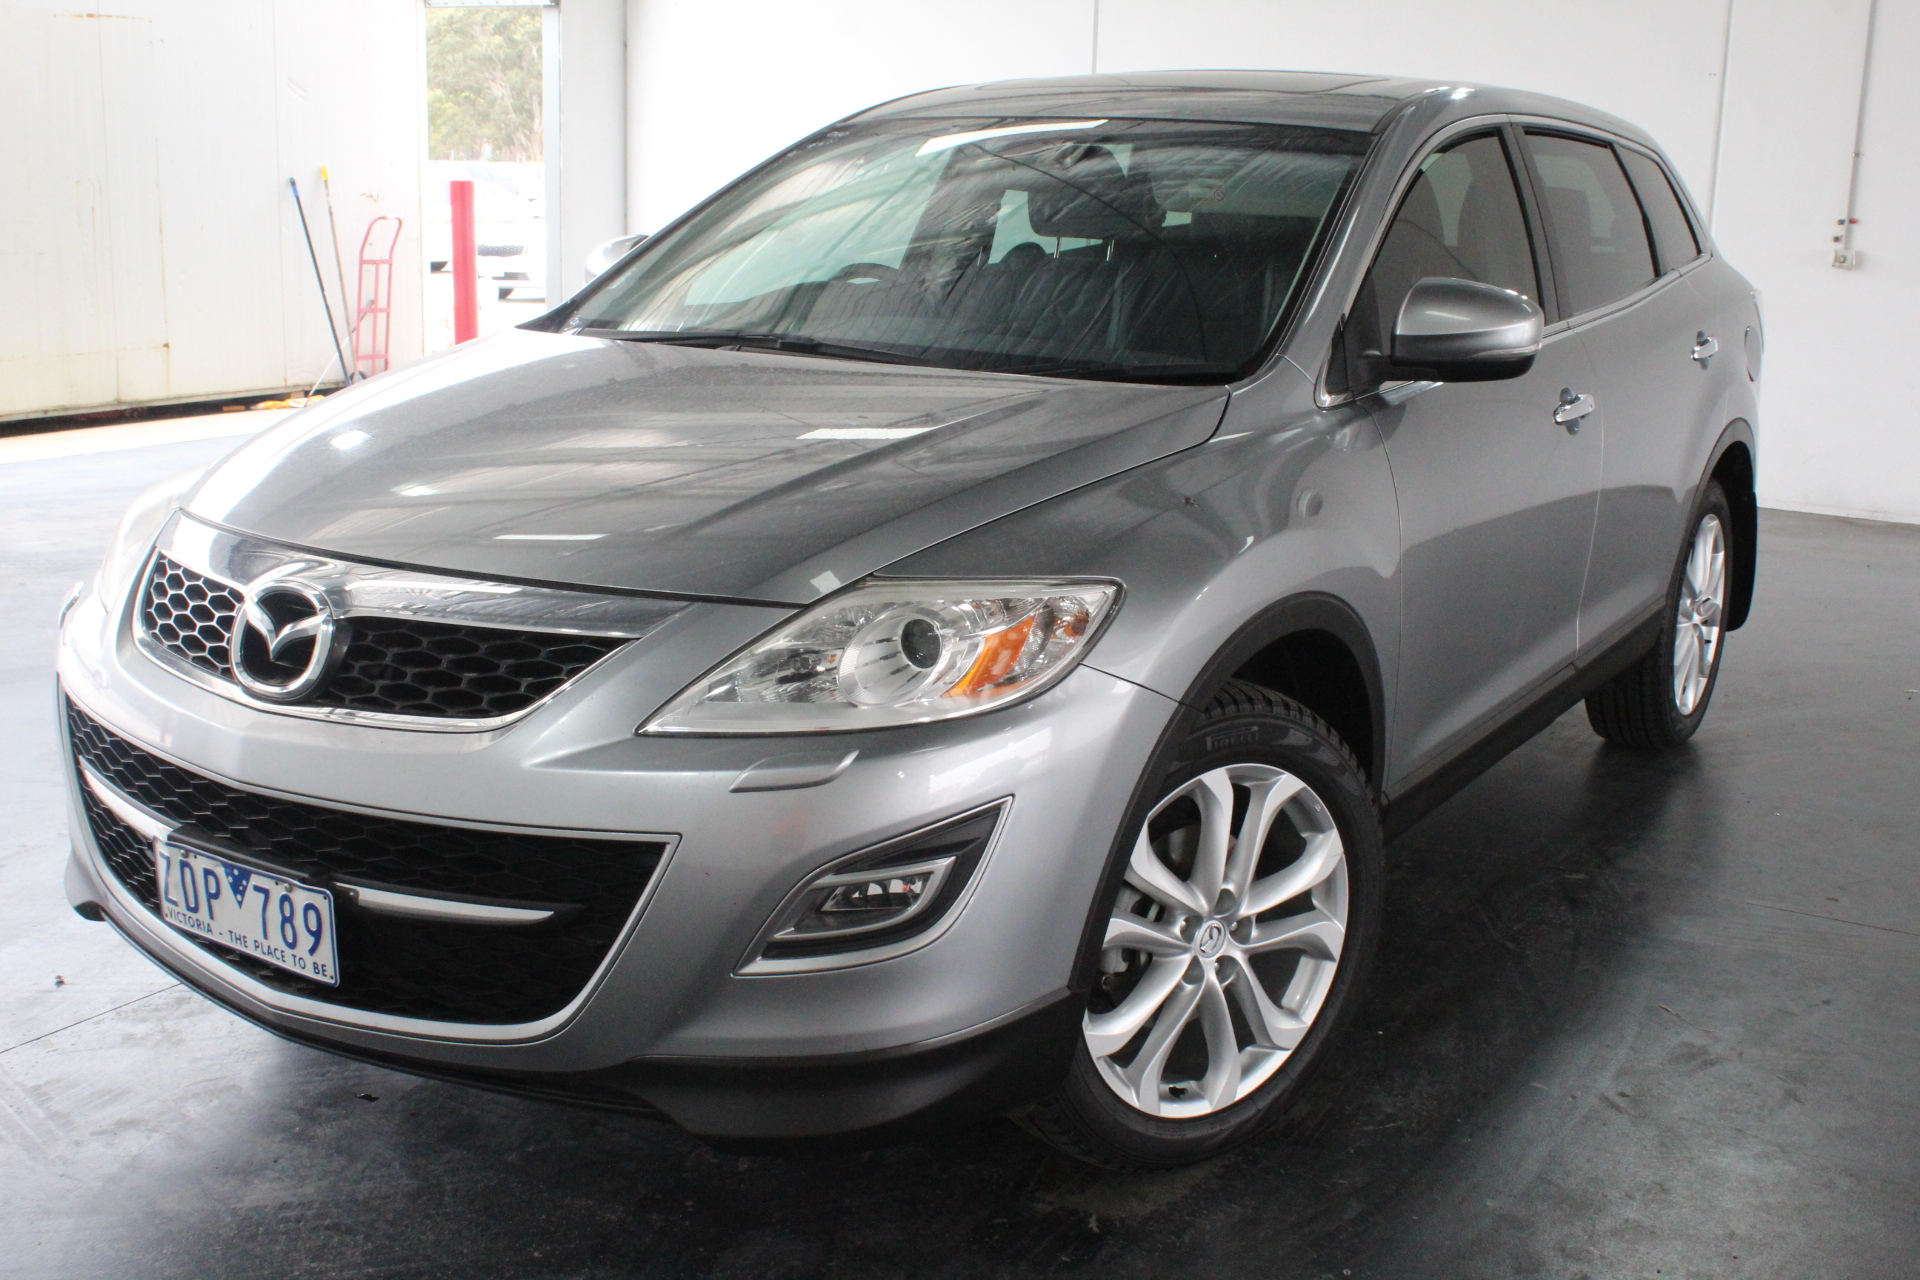 2012 Mazda CX-9 Luxury Automatic 7 Seats Wagon